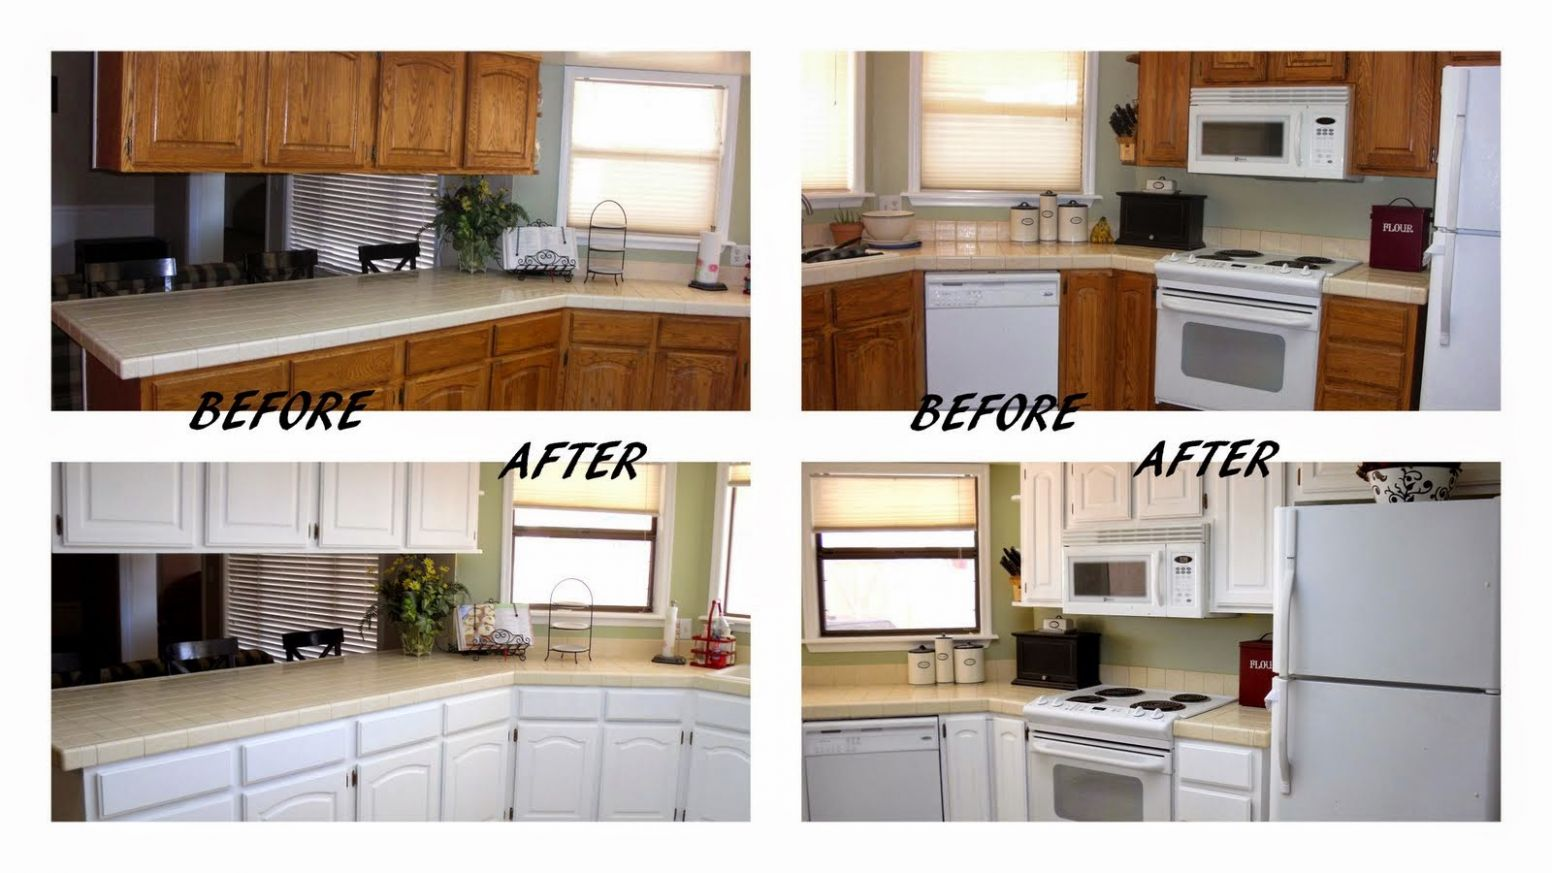 Kitchen Design Ideas Cheap Makeover Before And After L-shaped ..